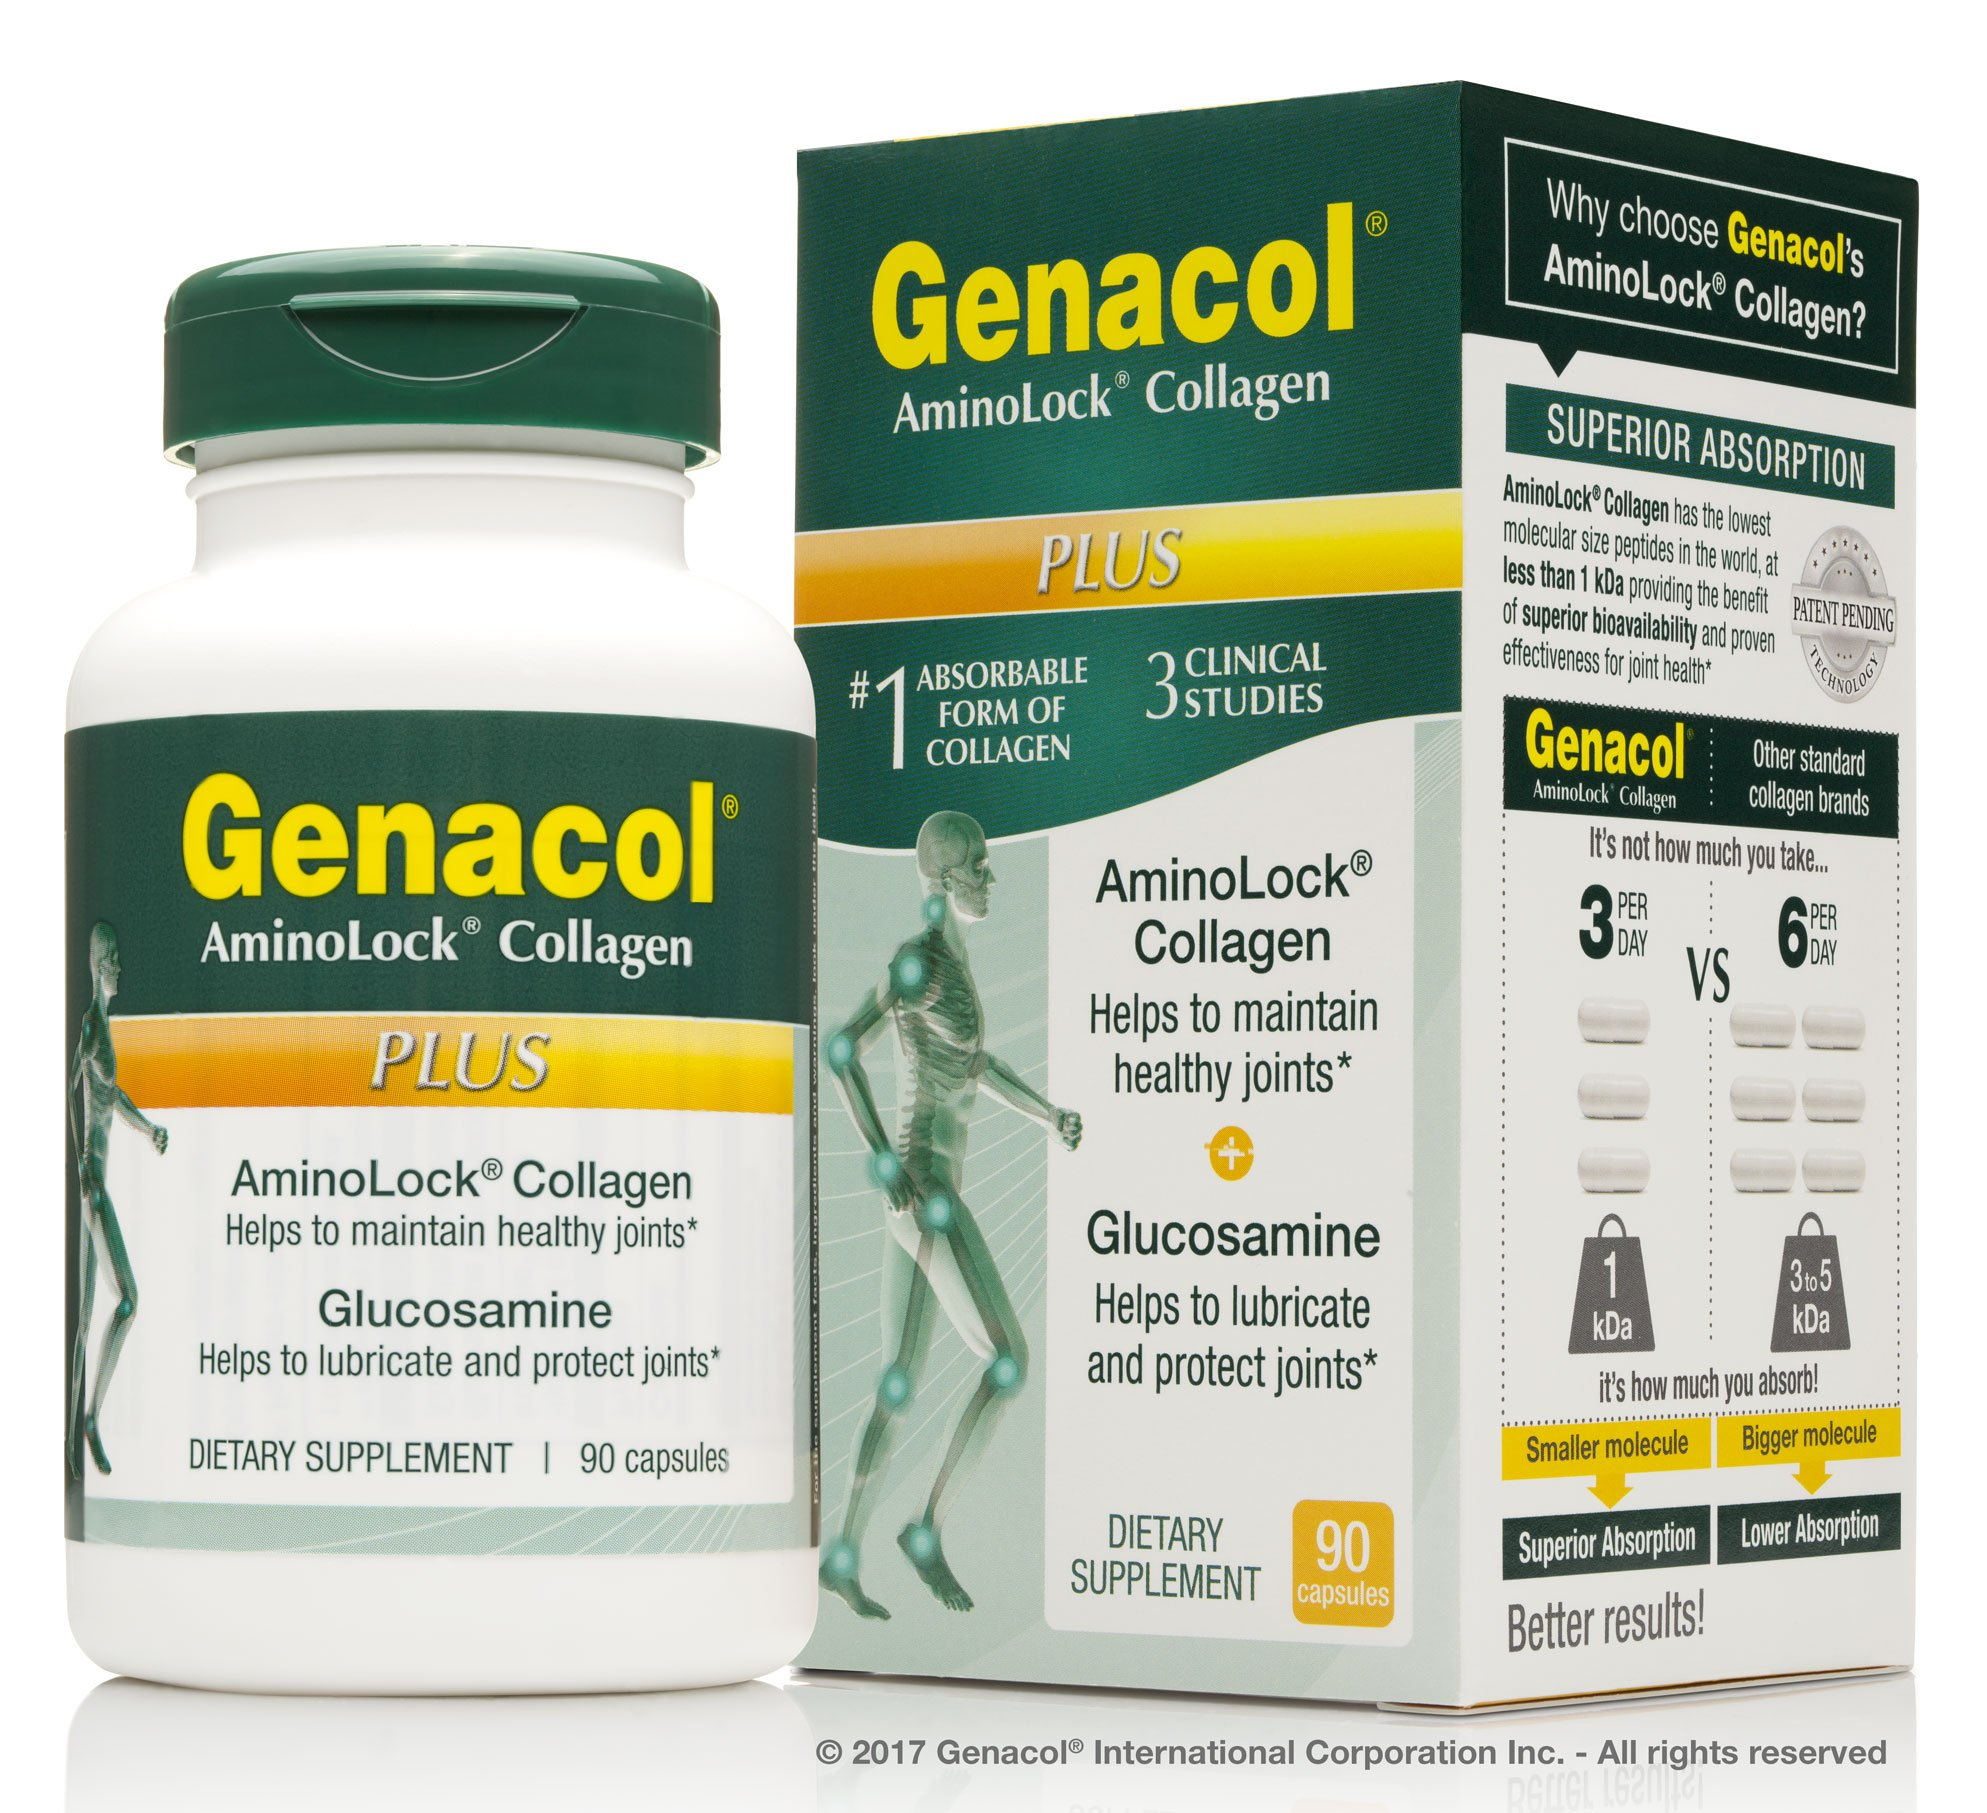 GENACOL Plus Glucosamine + Collagen Joint Supplements for Men and Women - 90 Capsules | Colageno